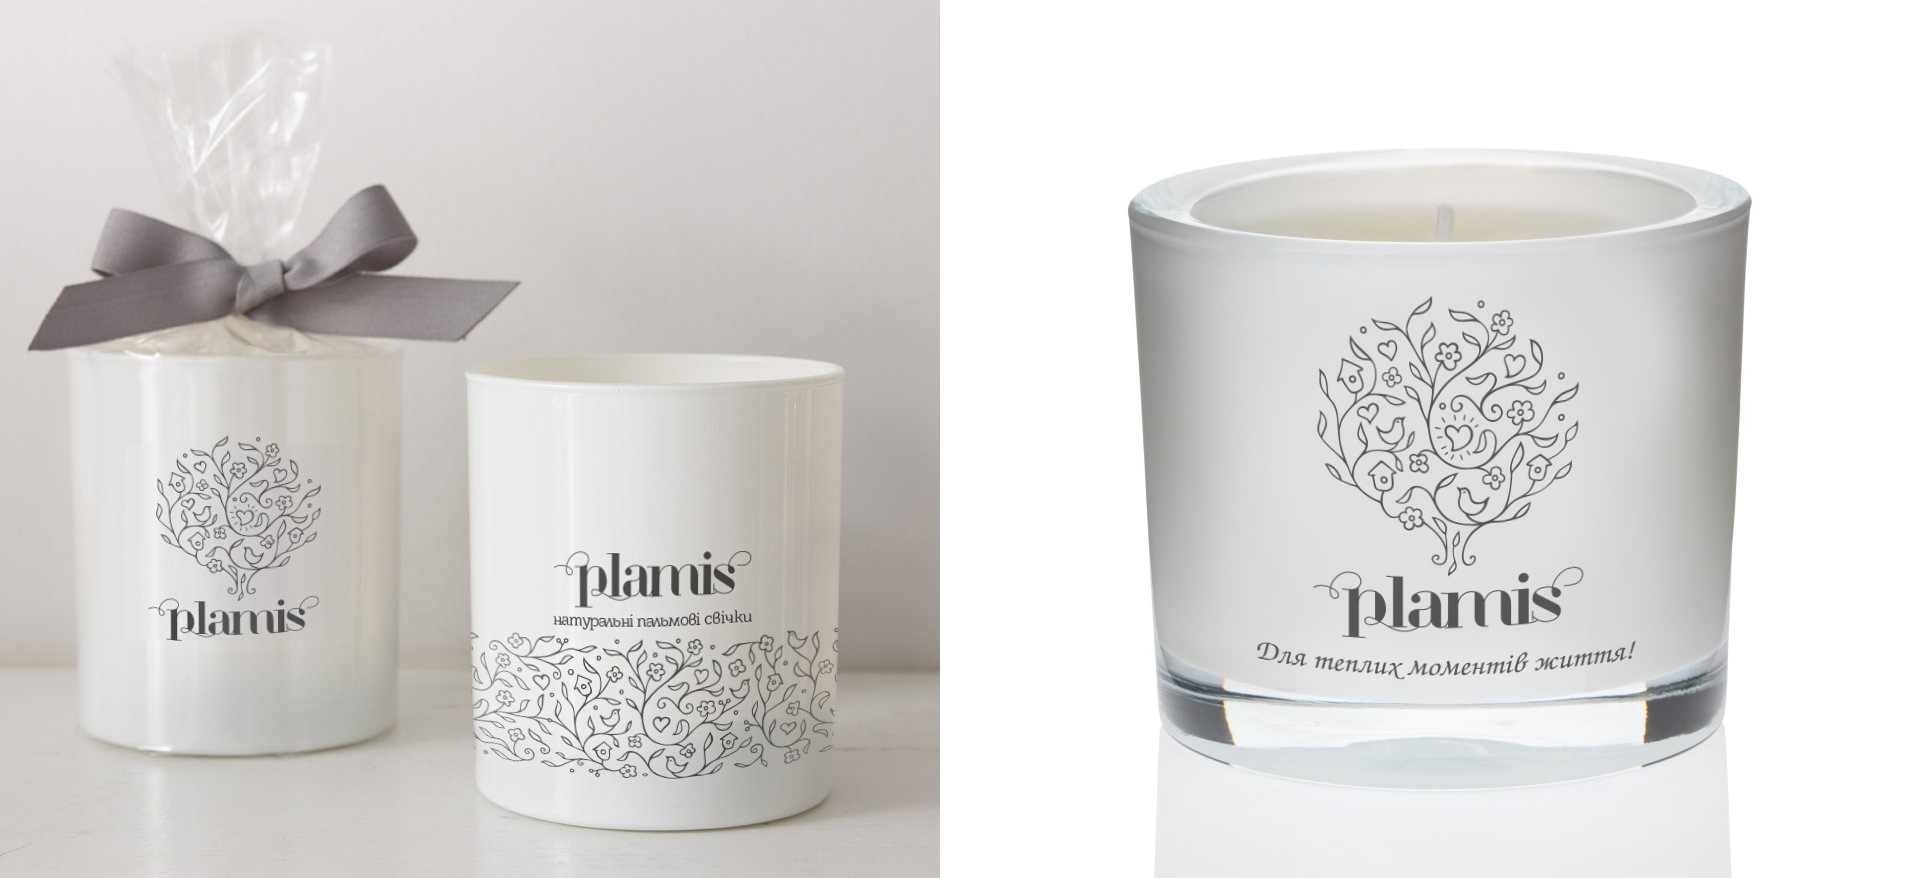 Candle packaging design